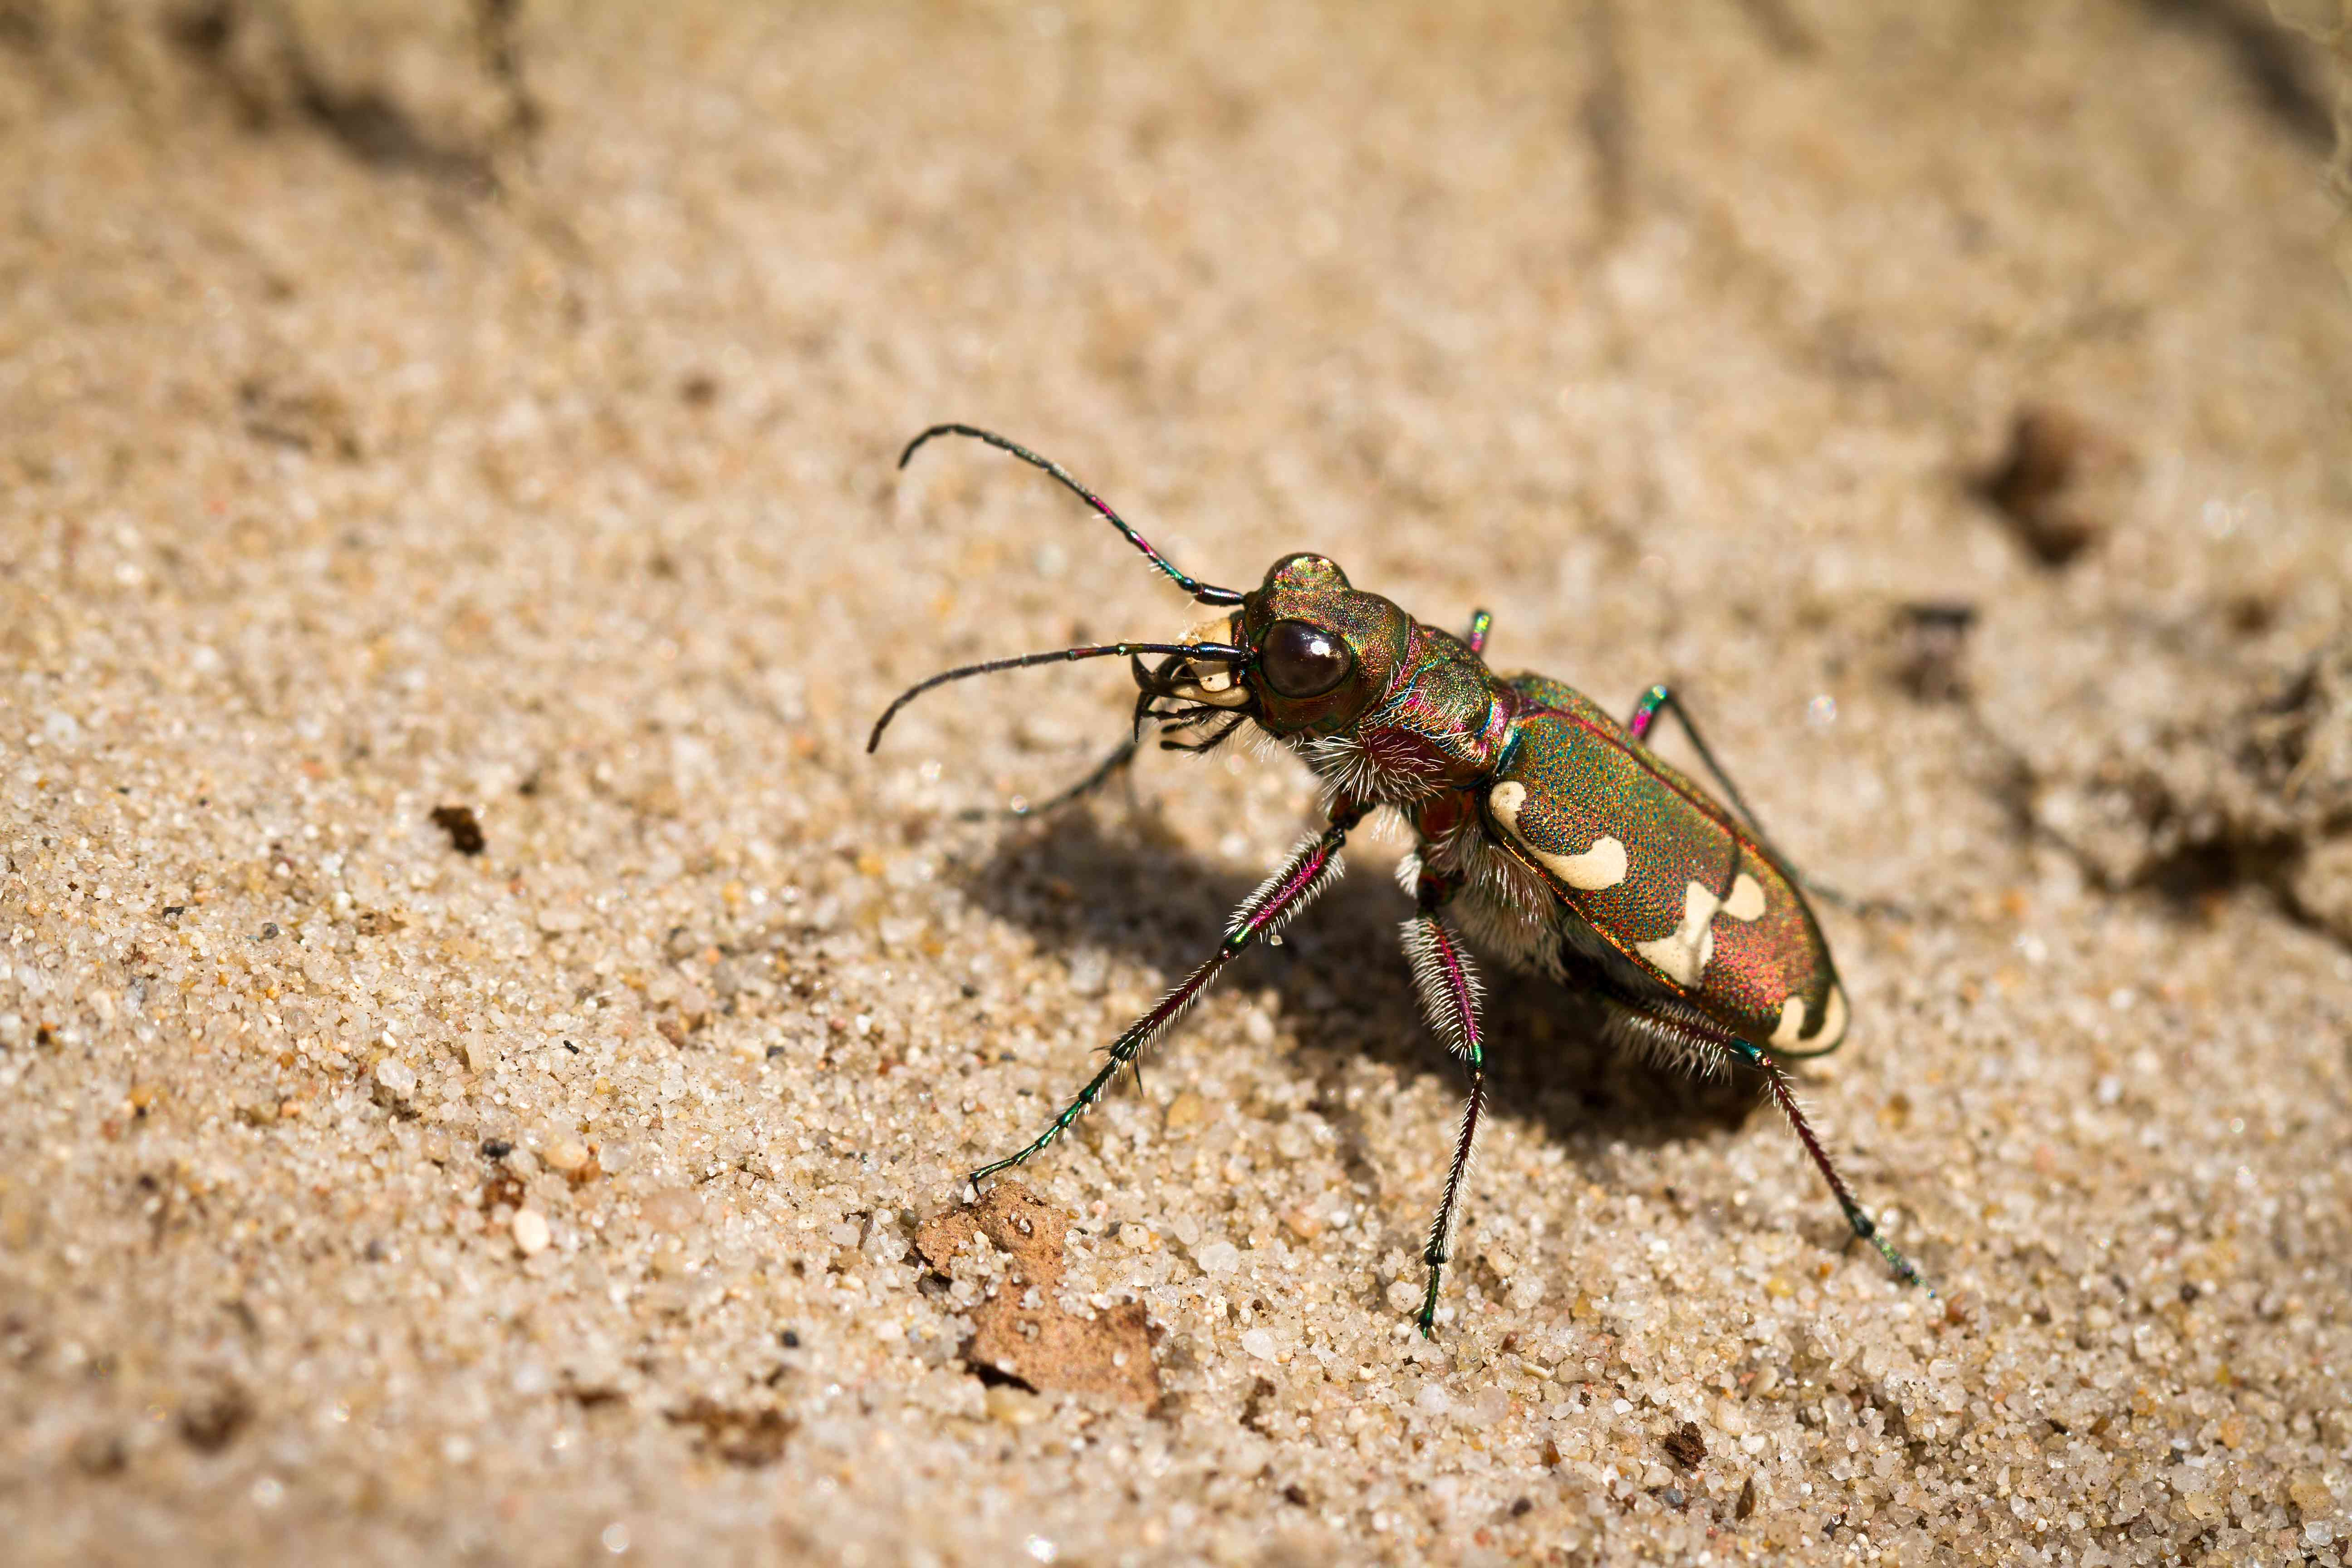 Side view of a tiger beetle on sand